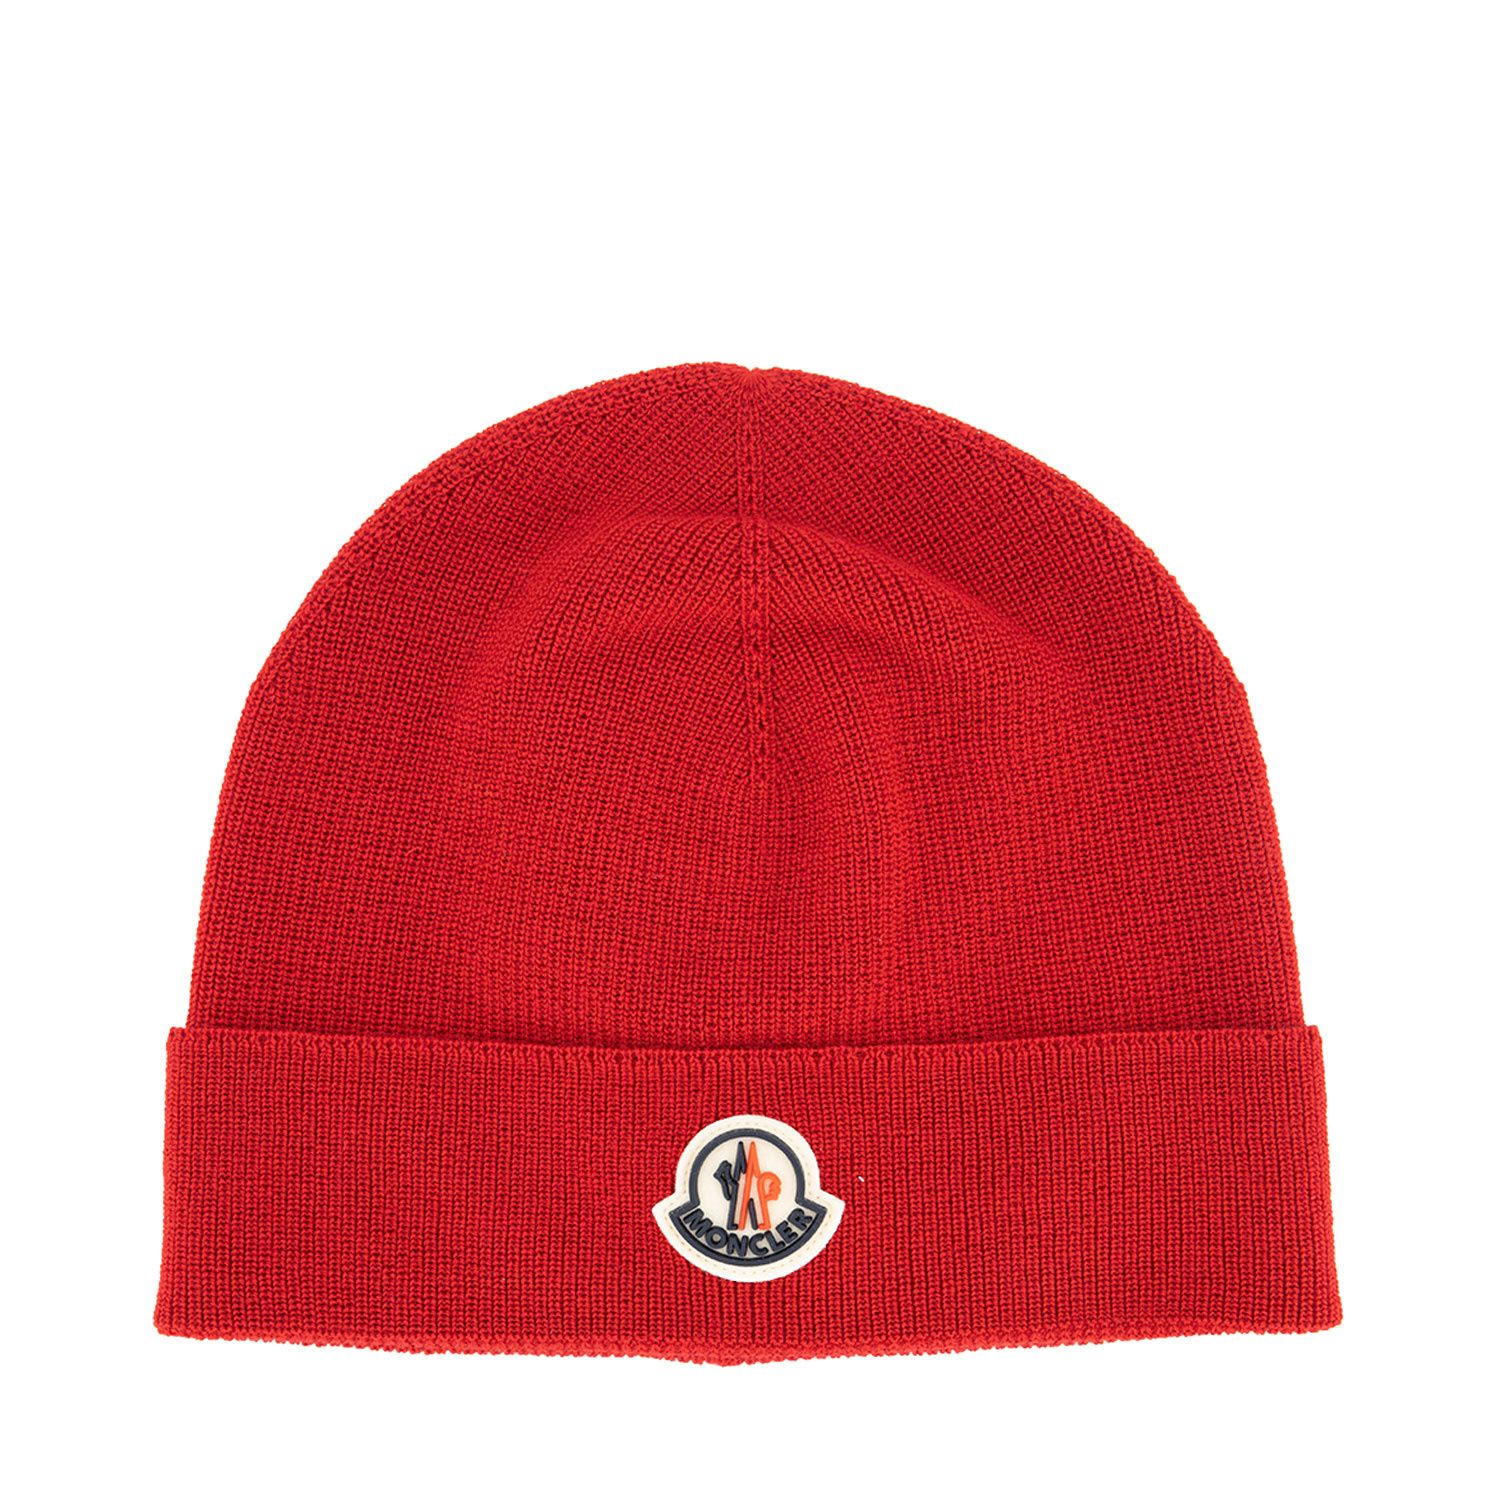 Picture of Moncler 9Z73100 kids hat red